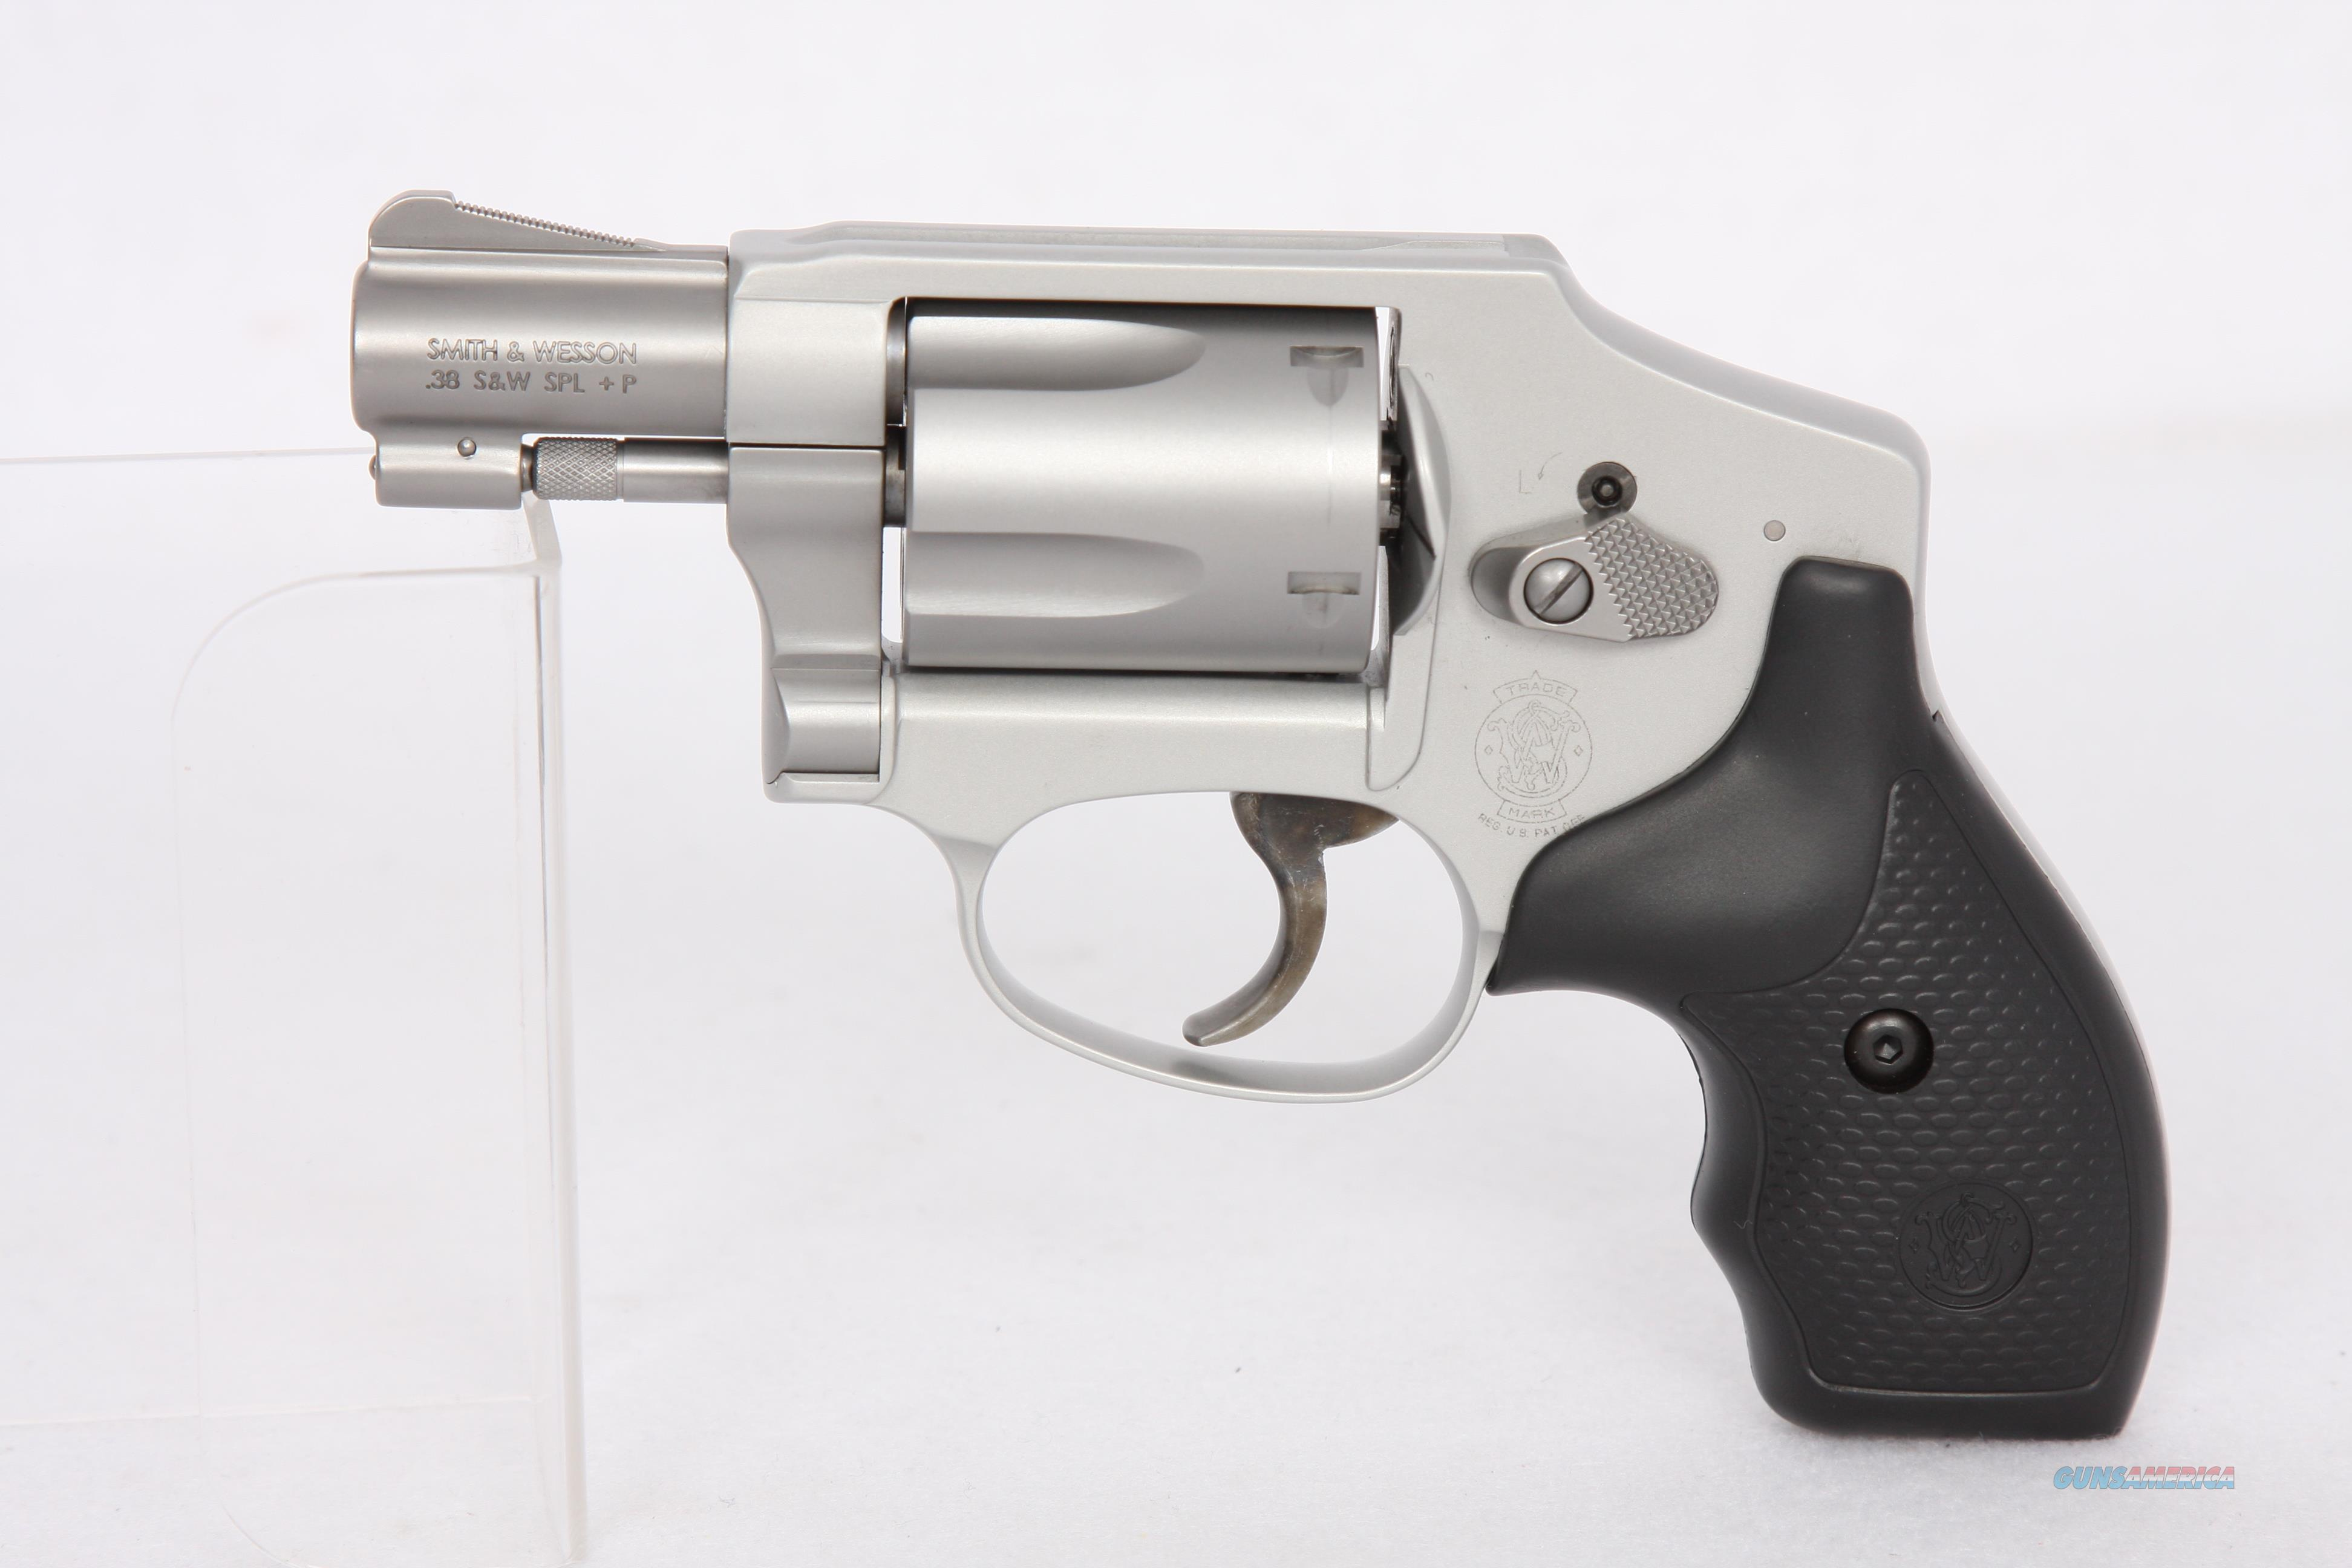 Smith and Wesson 642 .38spcl Stainless 1.87in  Guns > Pistols > Smith & Wesson Revolvers > Small Frame ( J )